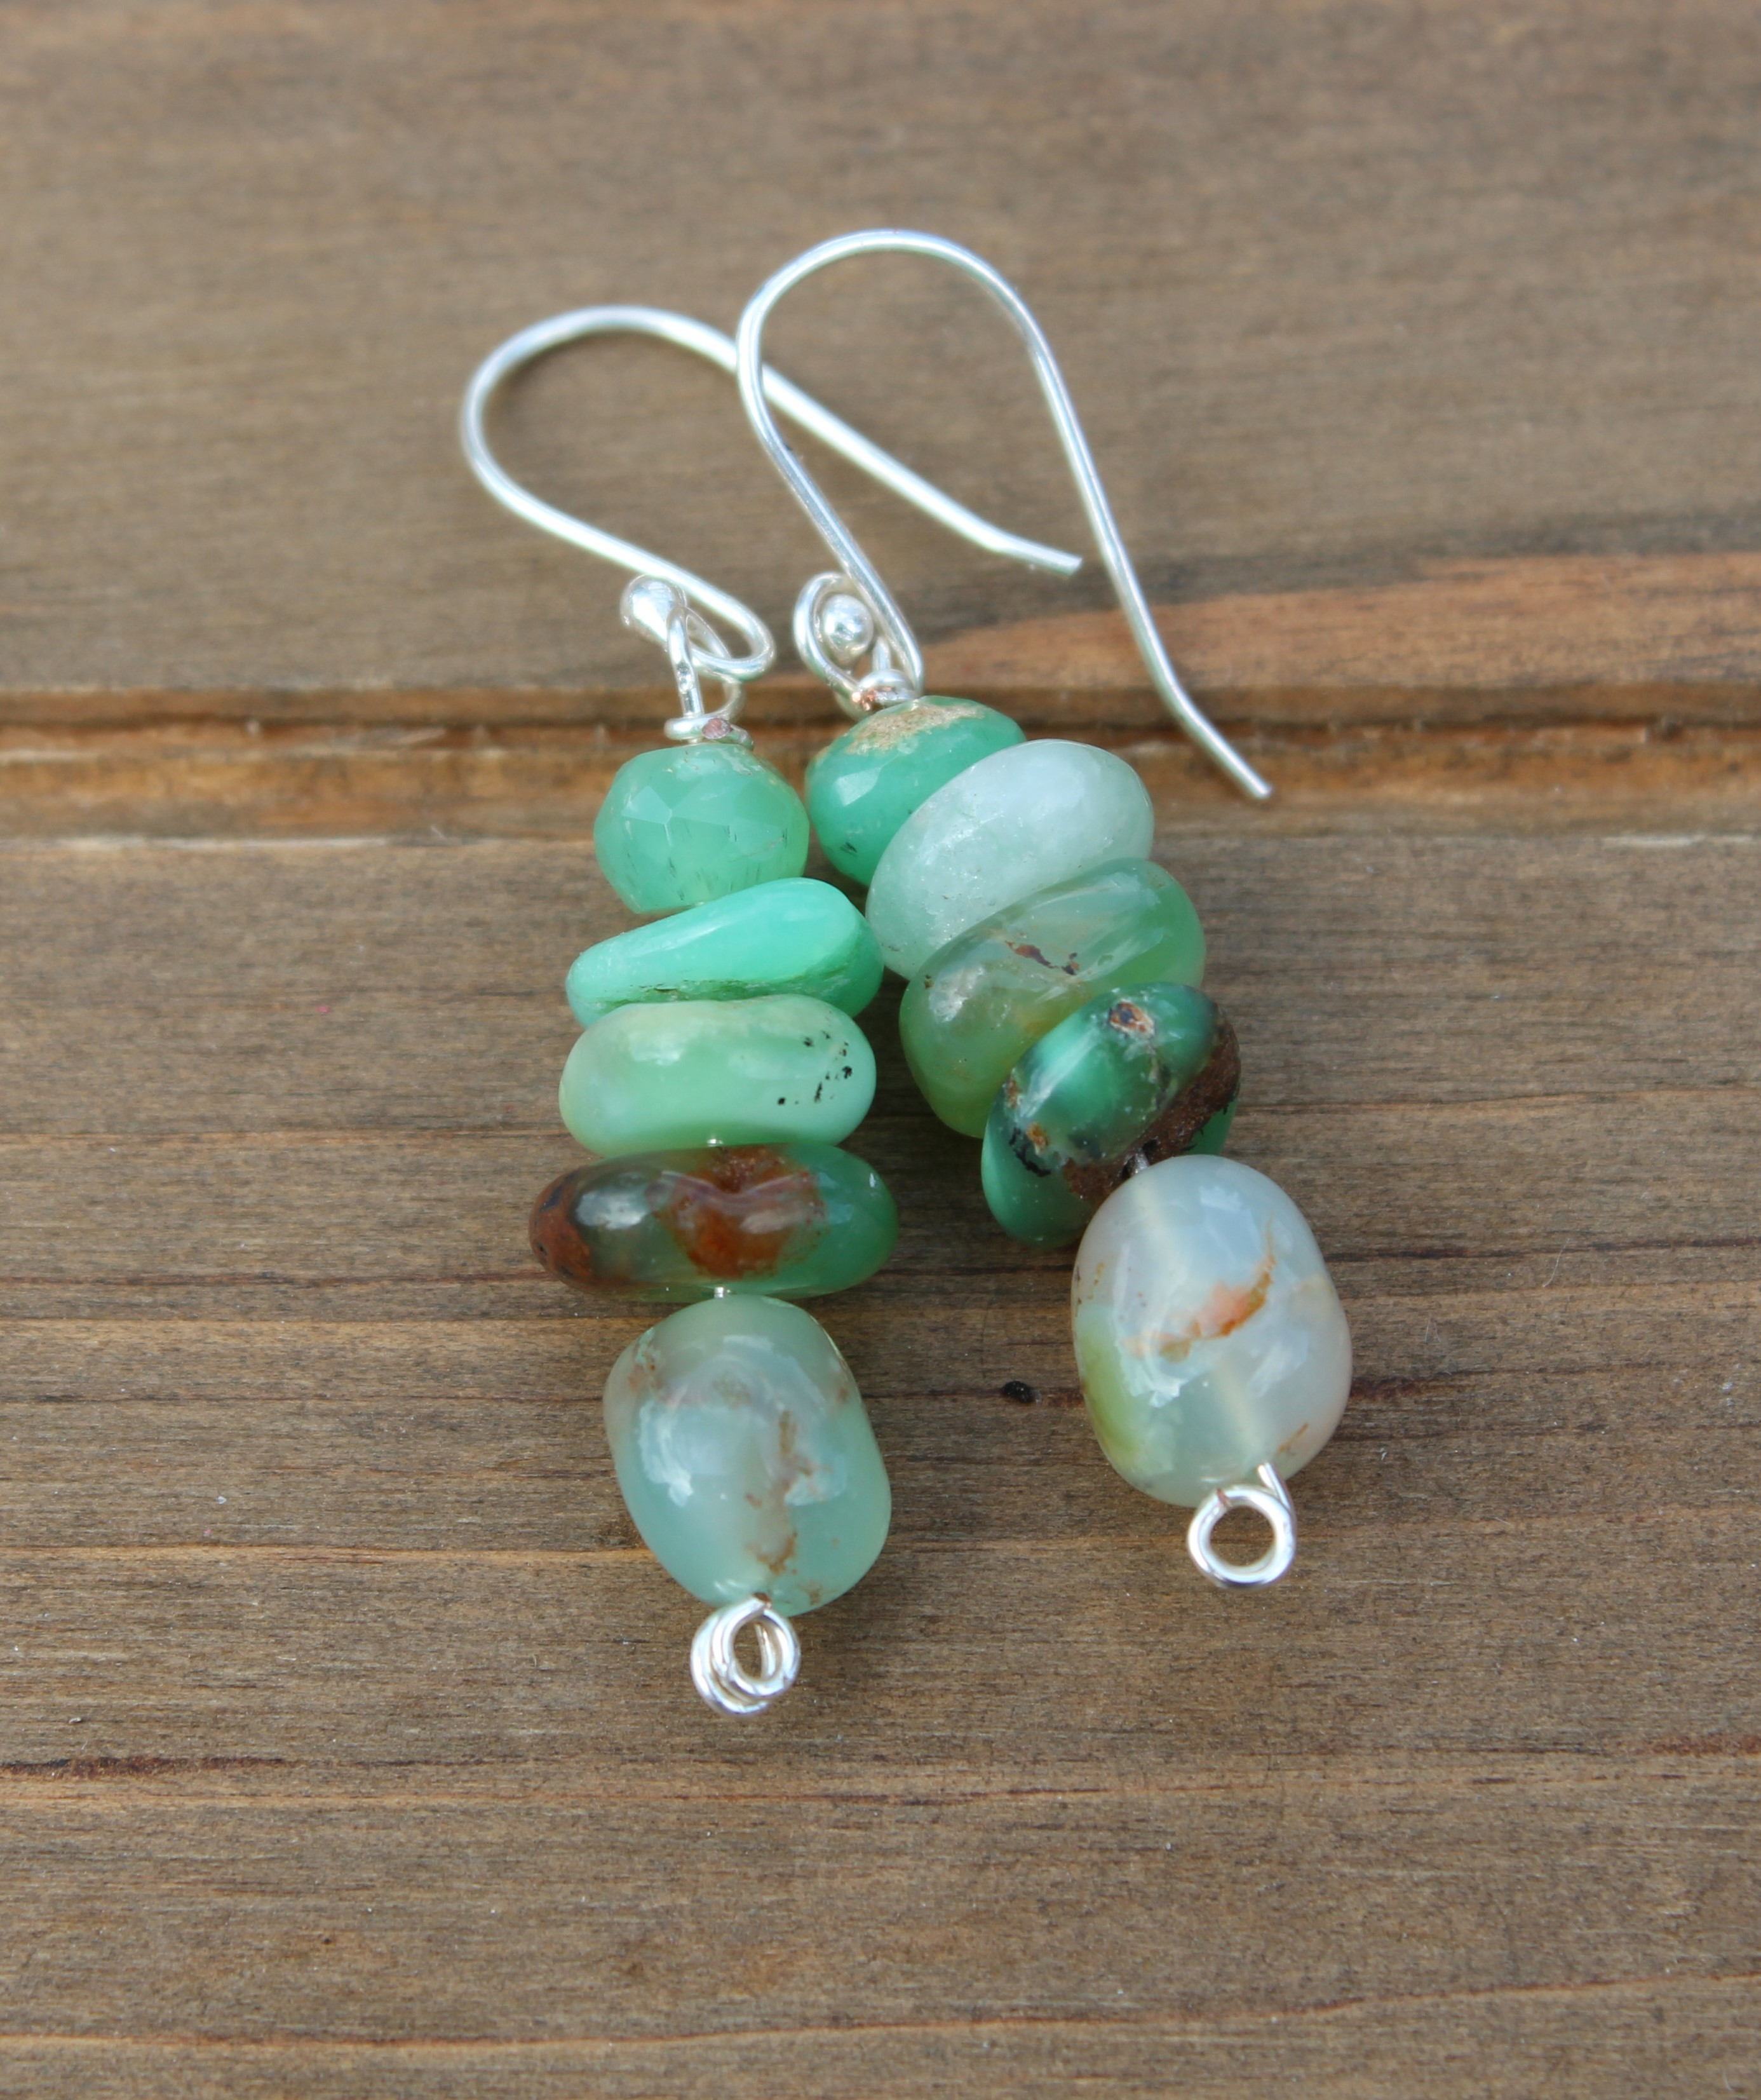 Chrysoprase Earrings, Chrysoprase jewelry, Chrysoprase Dangle, Drop Earrings,